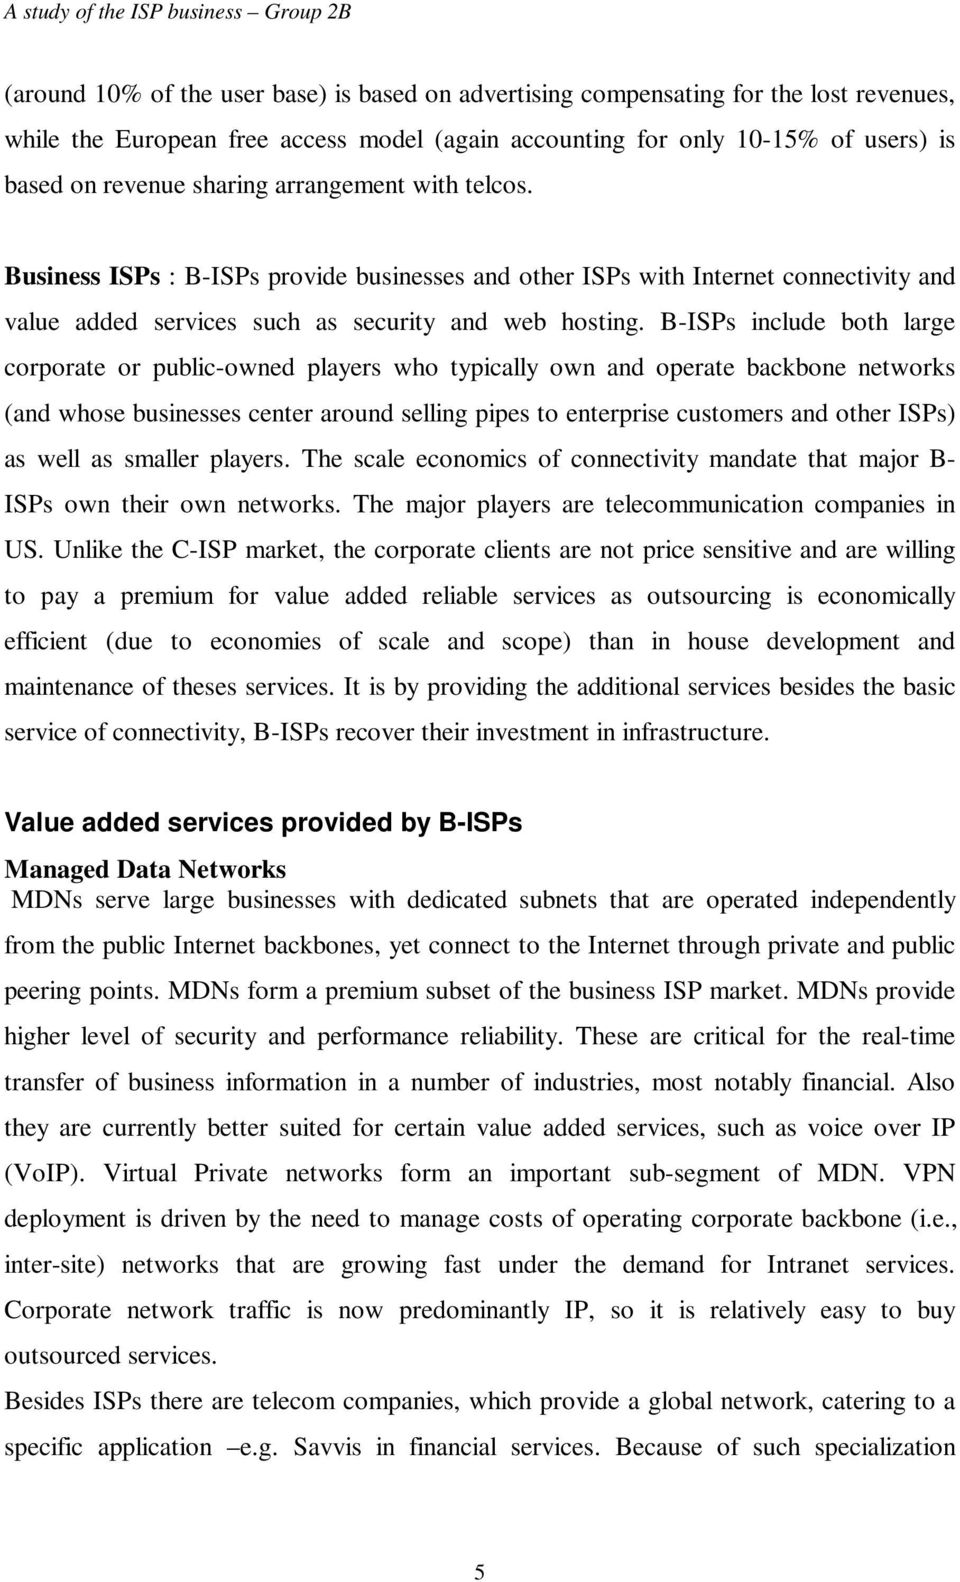 B-ISPs include both large corporate or public-owned players who typically own and operate backbone networks (and whose businesses center around selling pipes to enterprise customers and other ISPs)